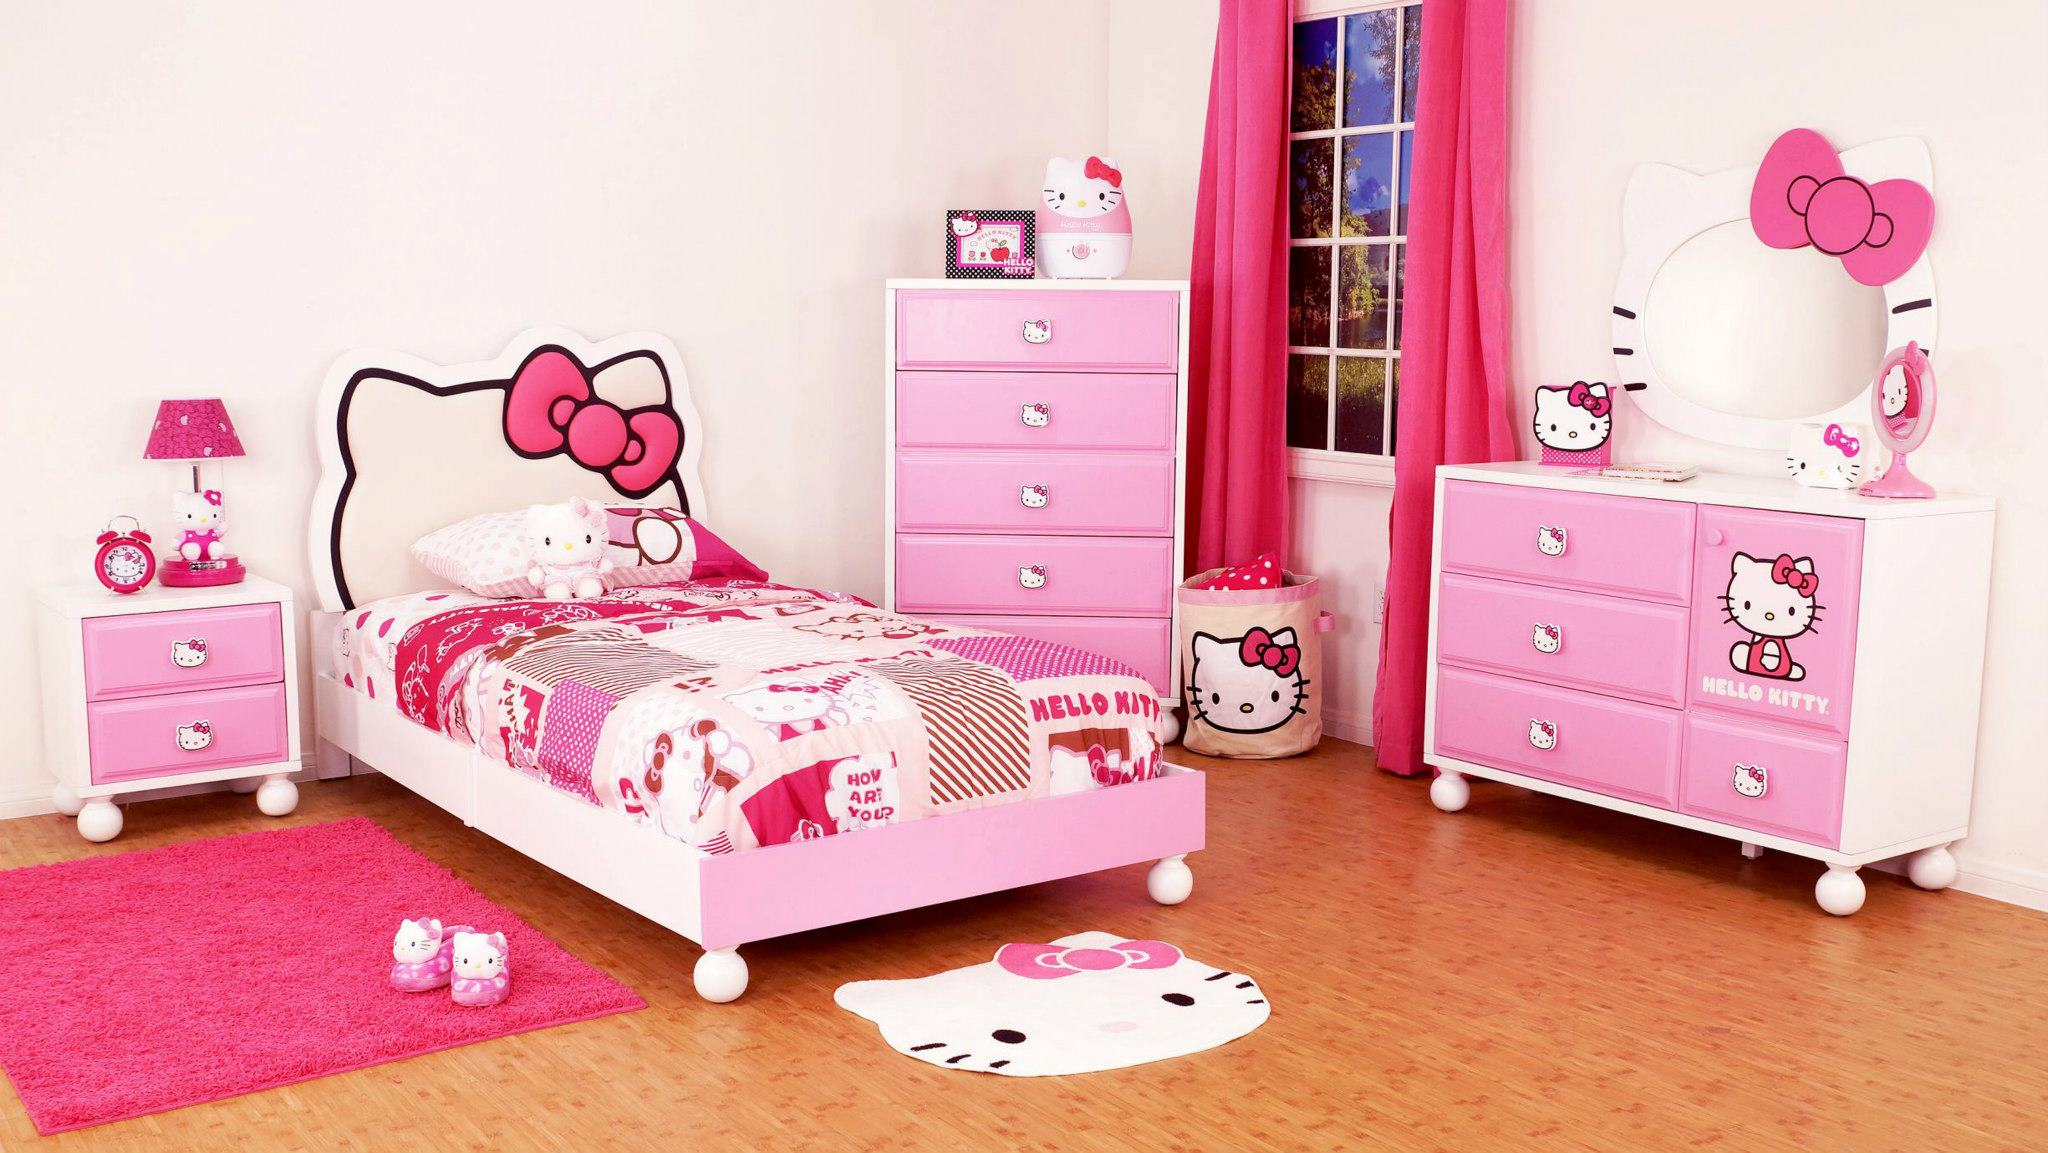 Bedrooms for girls hello kitty - View In Gallery Hello Kitty Theme Kids Bedroom Interior Design